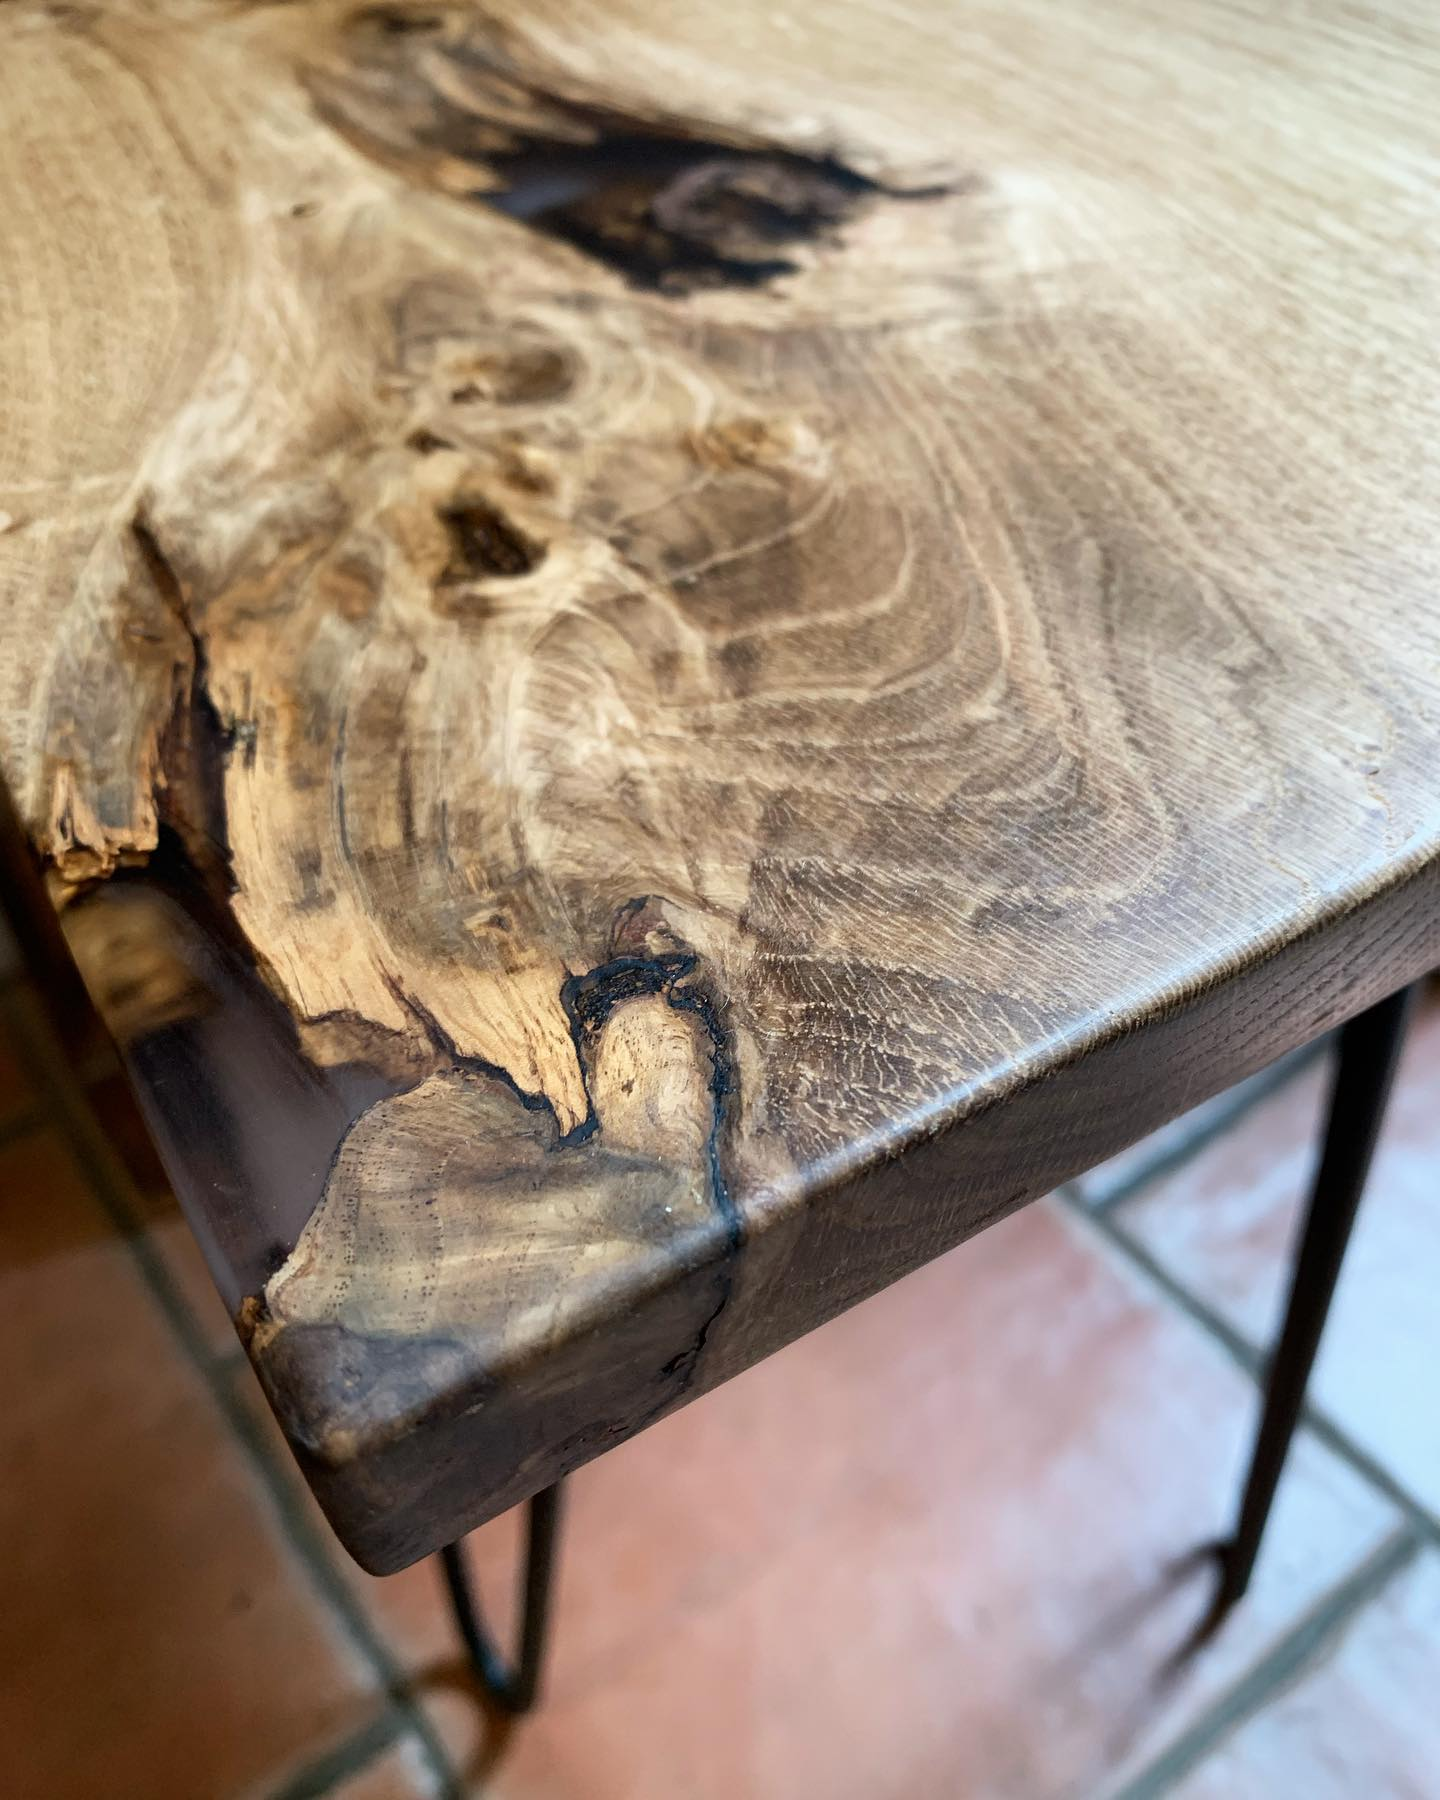 What an amazing piece of oak!!!?! It's a million miles from how it was a few days ago, Now Fully revived into something functional  needs a bit more polishing and it'll be market ready!..#beautifulwood #elbowgrease #handcrafted #tabletop #resin #oak #hardworkpaysoff